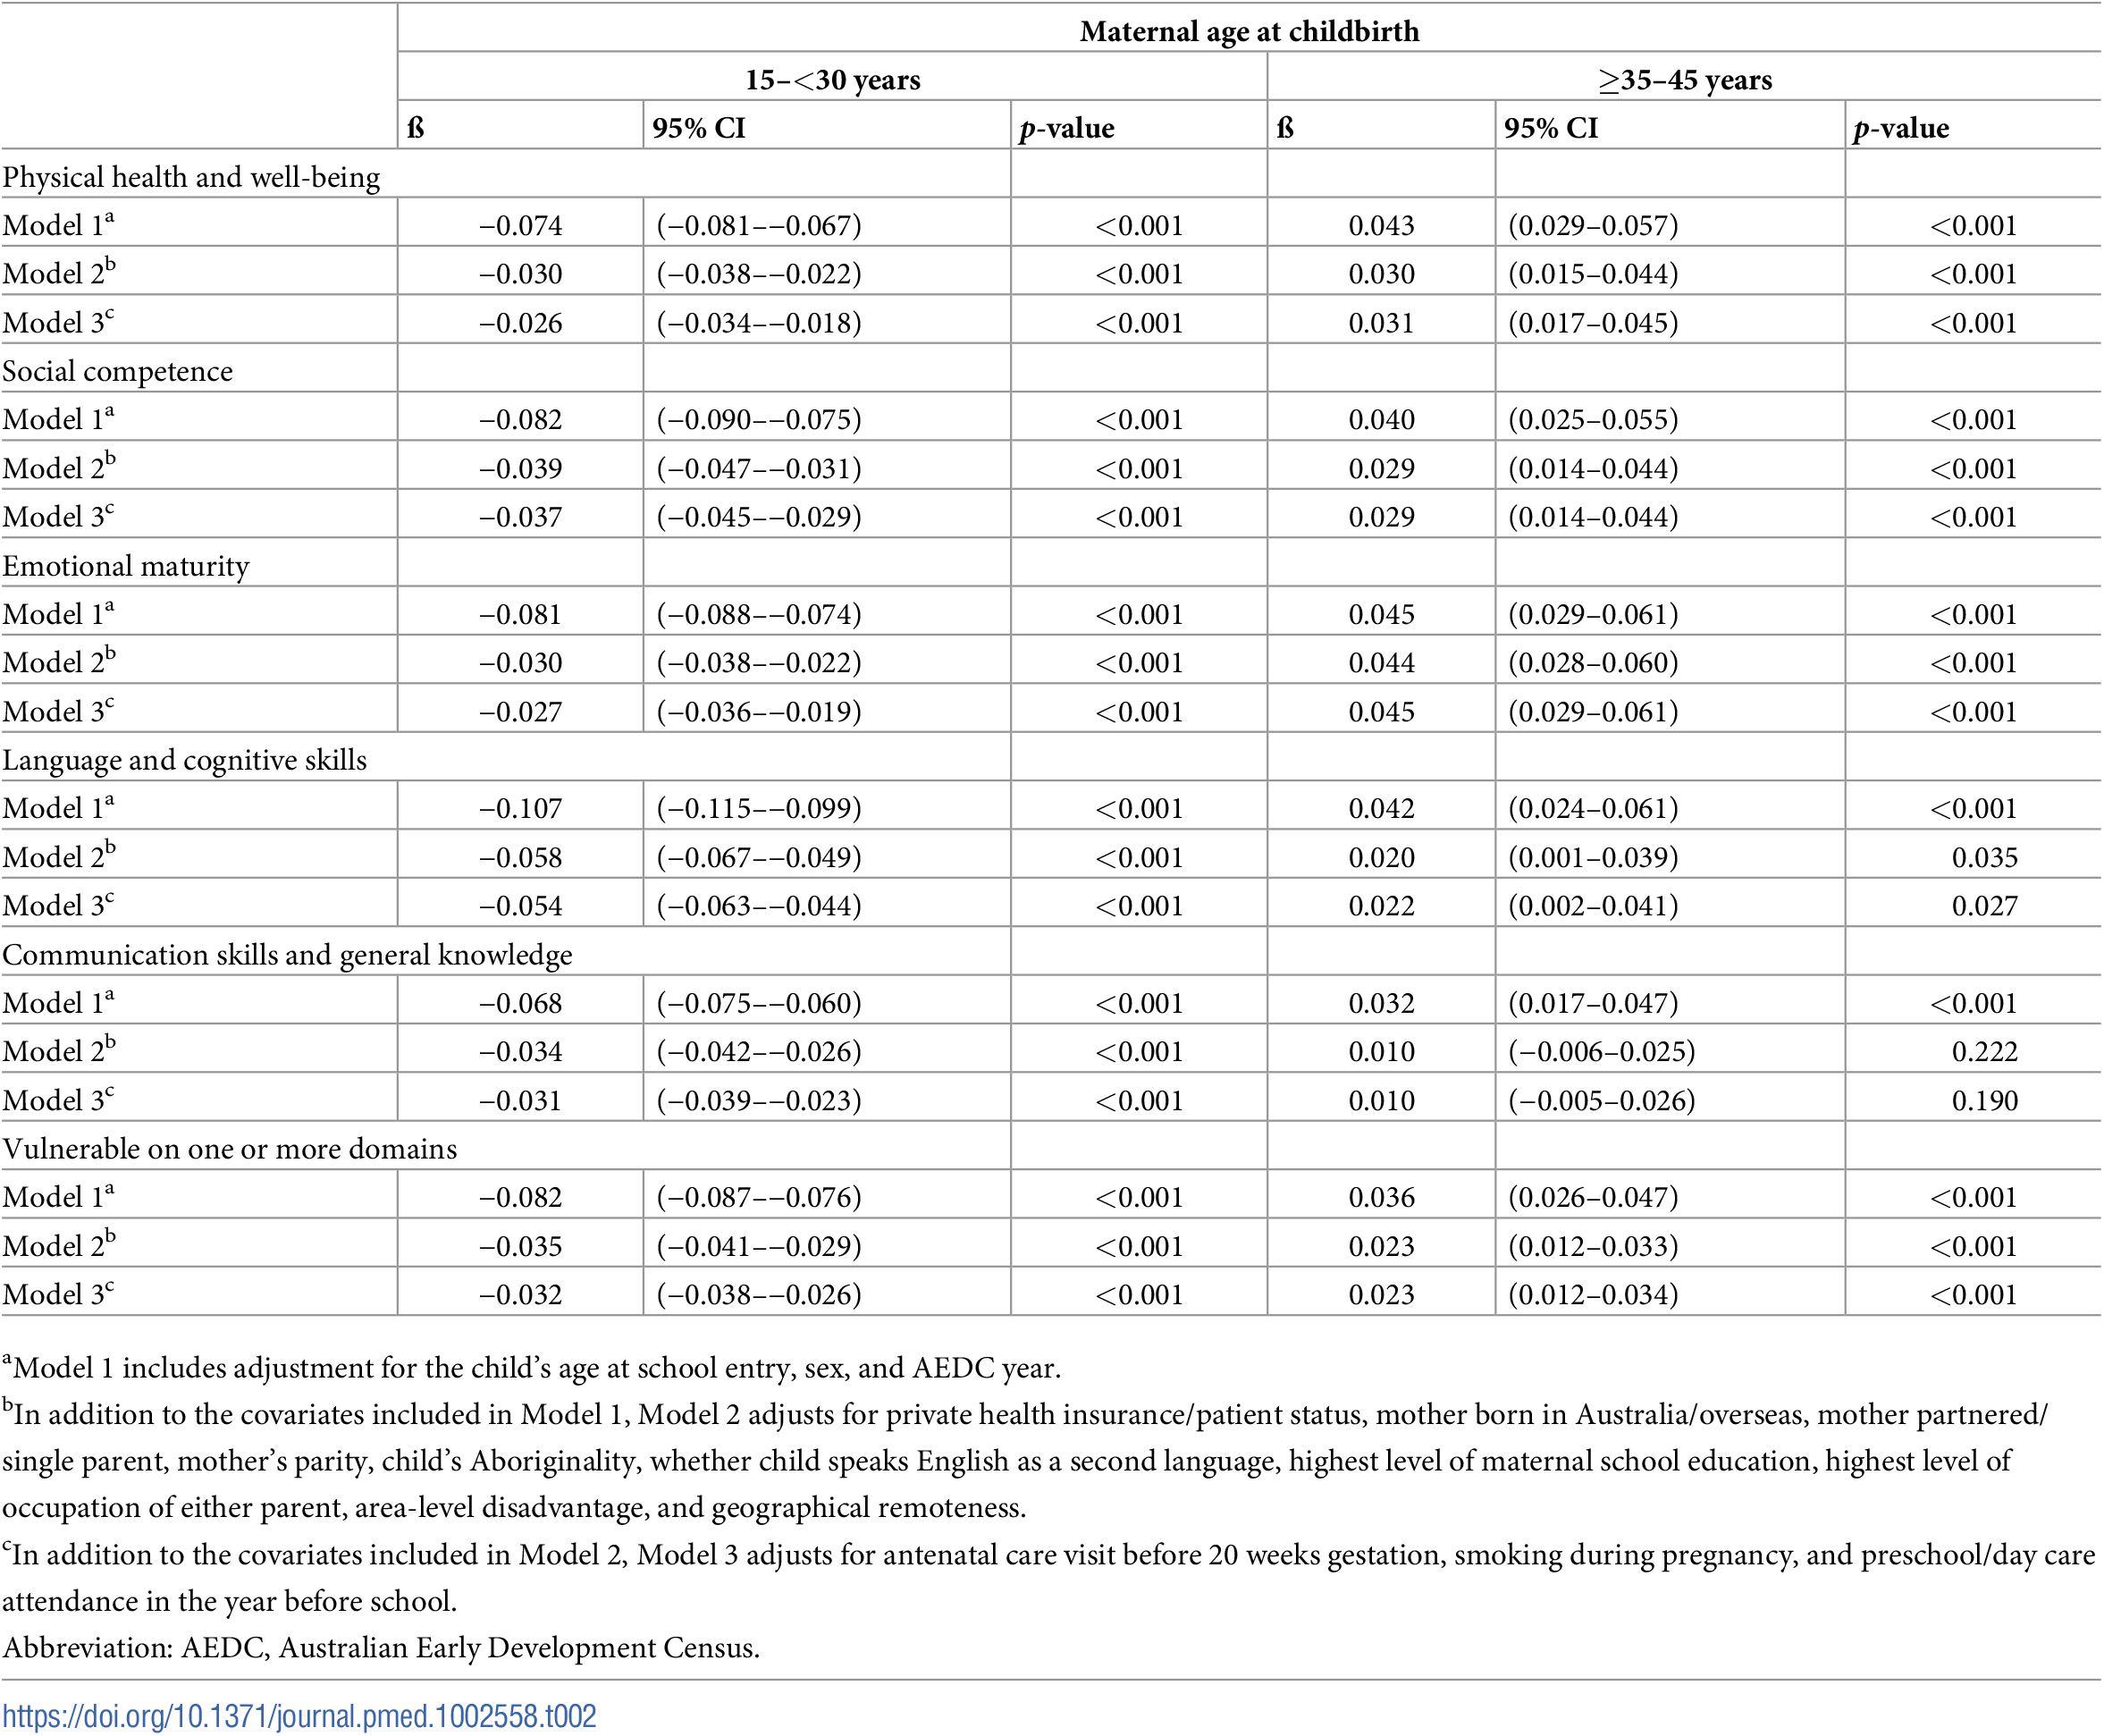 Coefficients for 1-year increase in maternal age between 15–<30 years, and ≥35–45 years, from piecewise linear regression models.